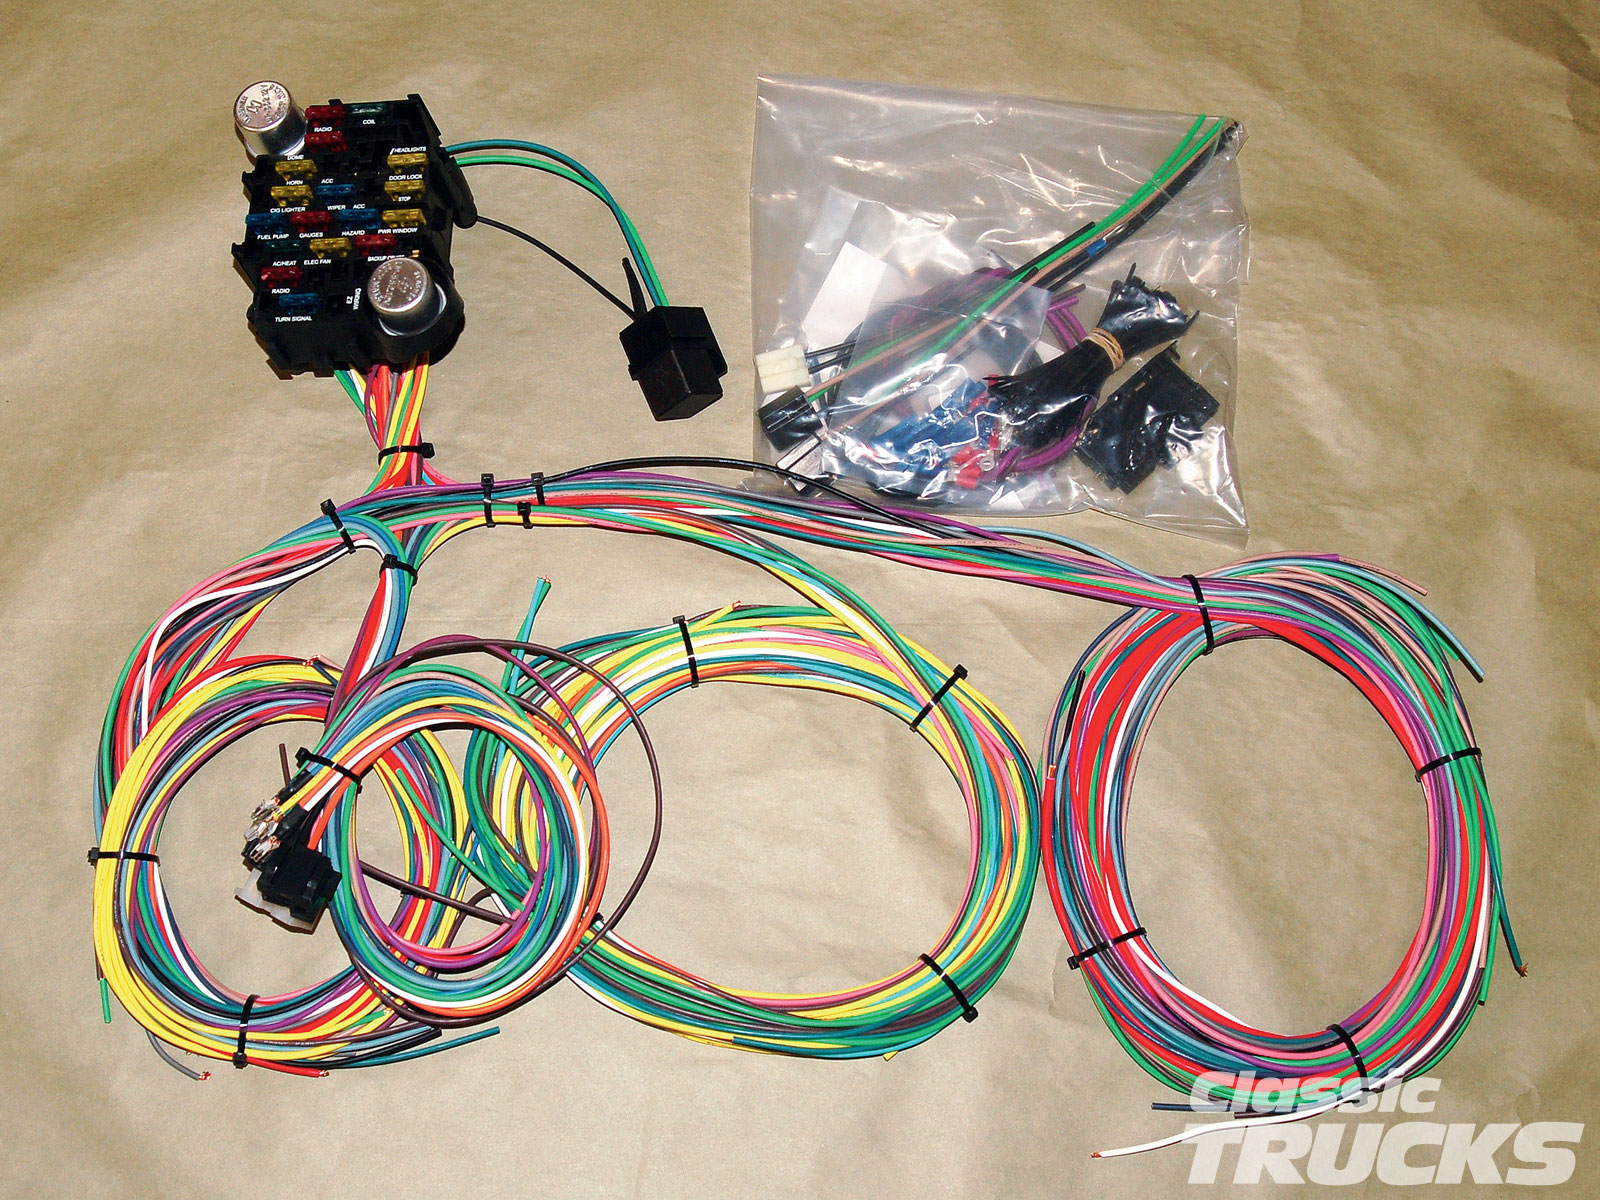 1010clt 02 o aftermarket wiring harness install kit?resize=640%2C480 how much does a wire harness cost to replace hobbiesxstyle how much does it cost to replace a wiring harness at bakdesigns.co